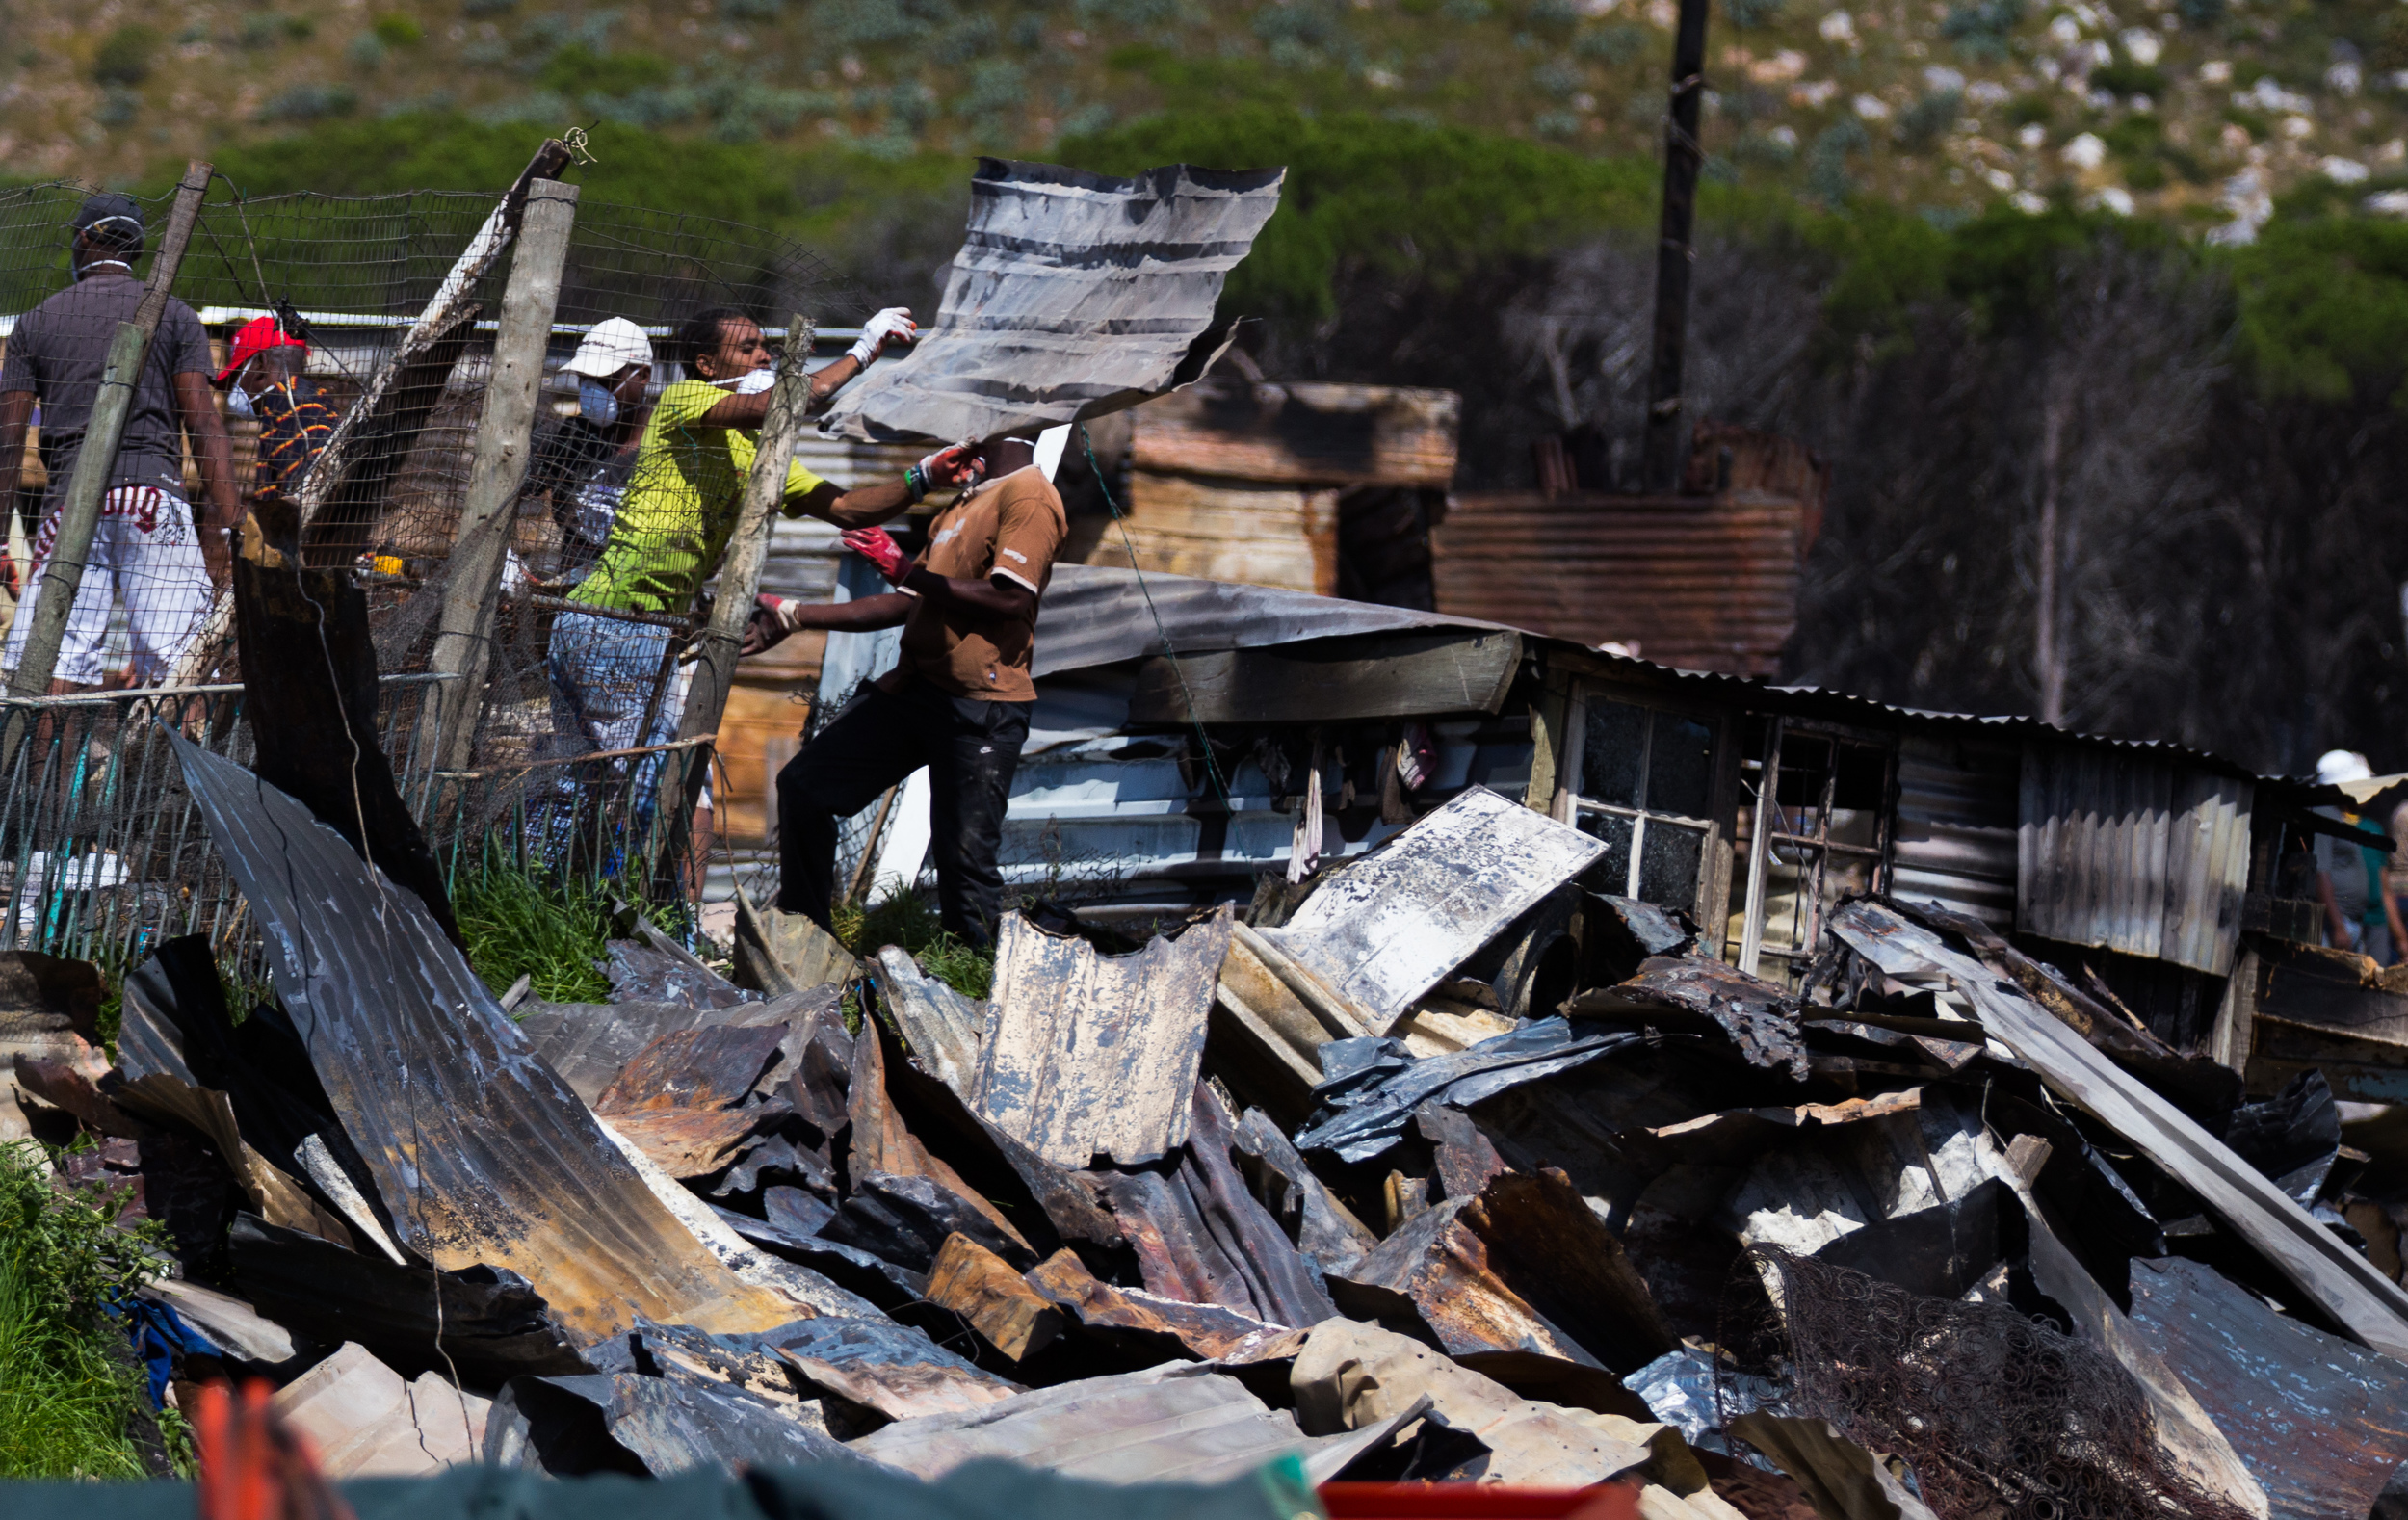 Aftermath of a Township Fire , Cape Town, South Africa